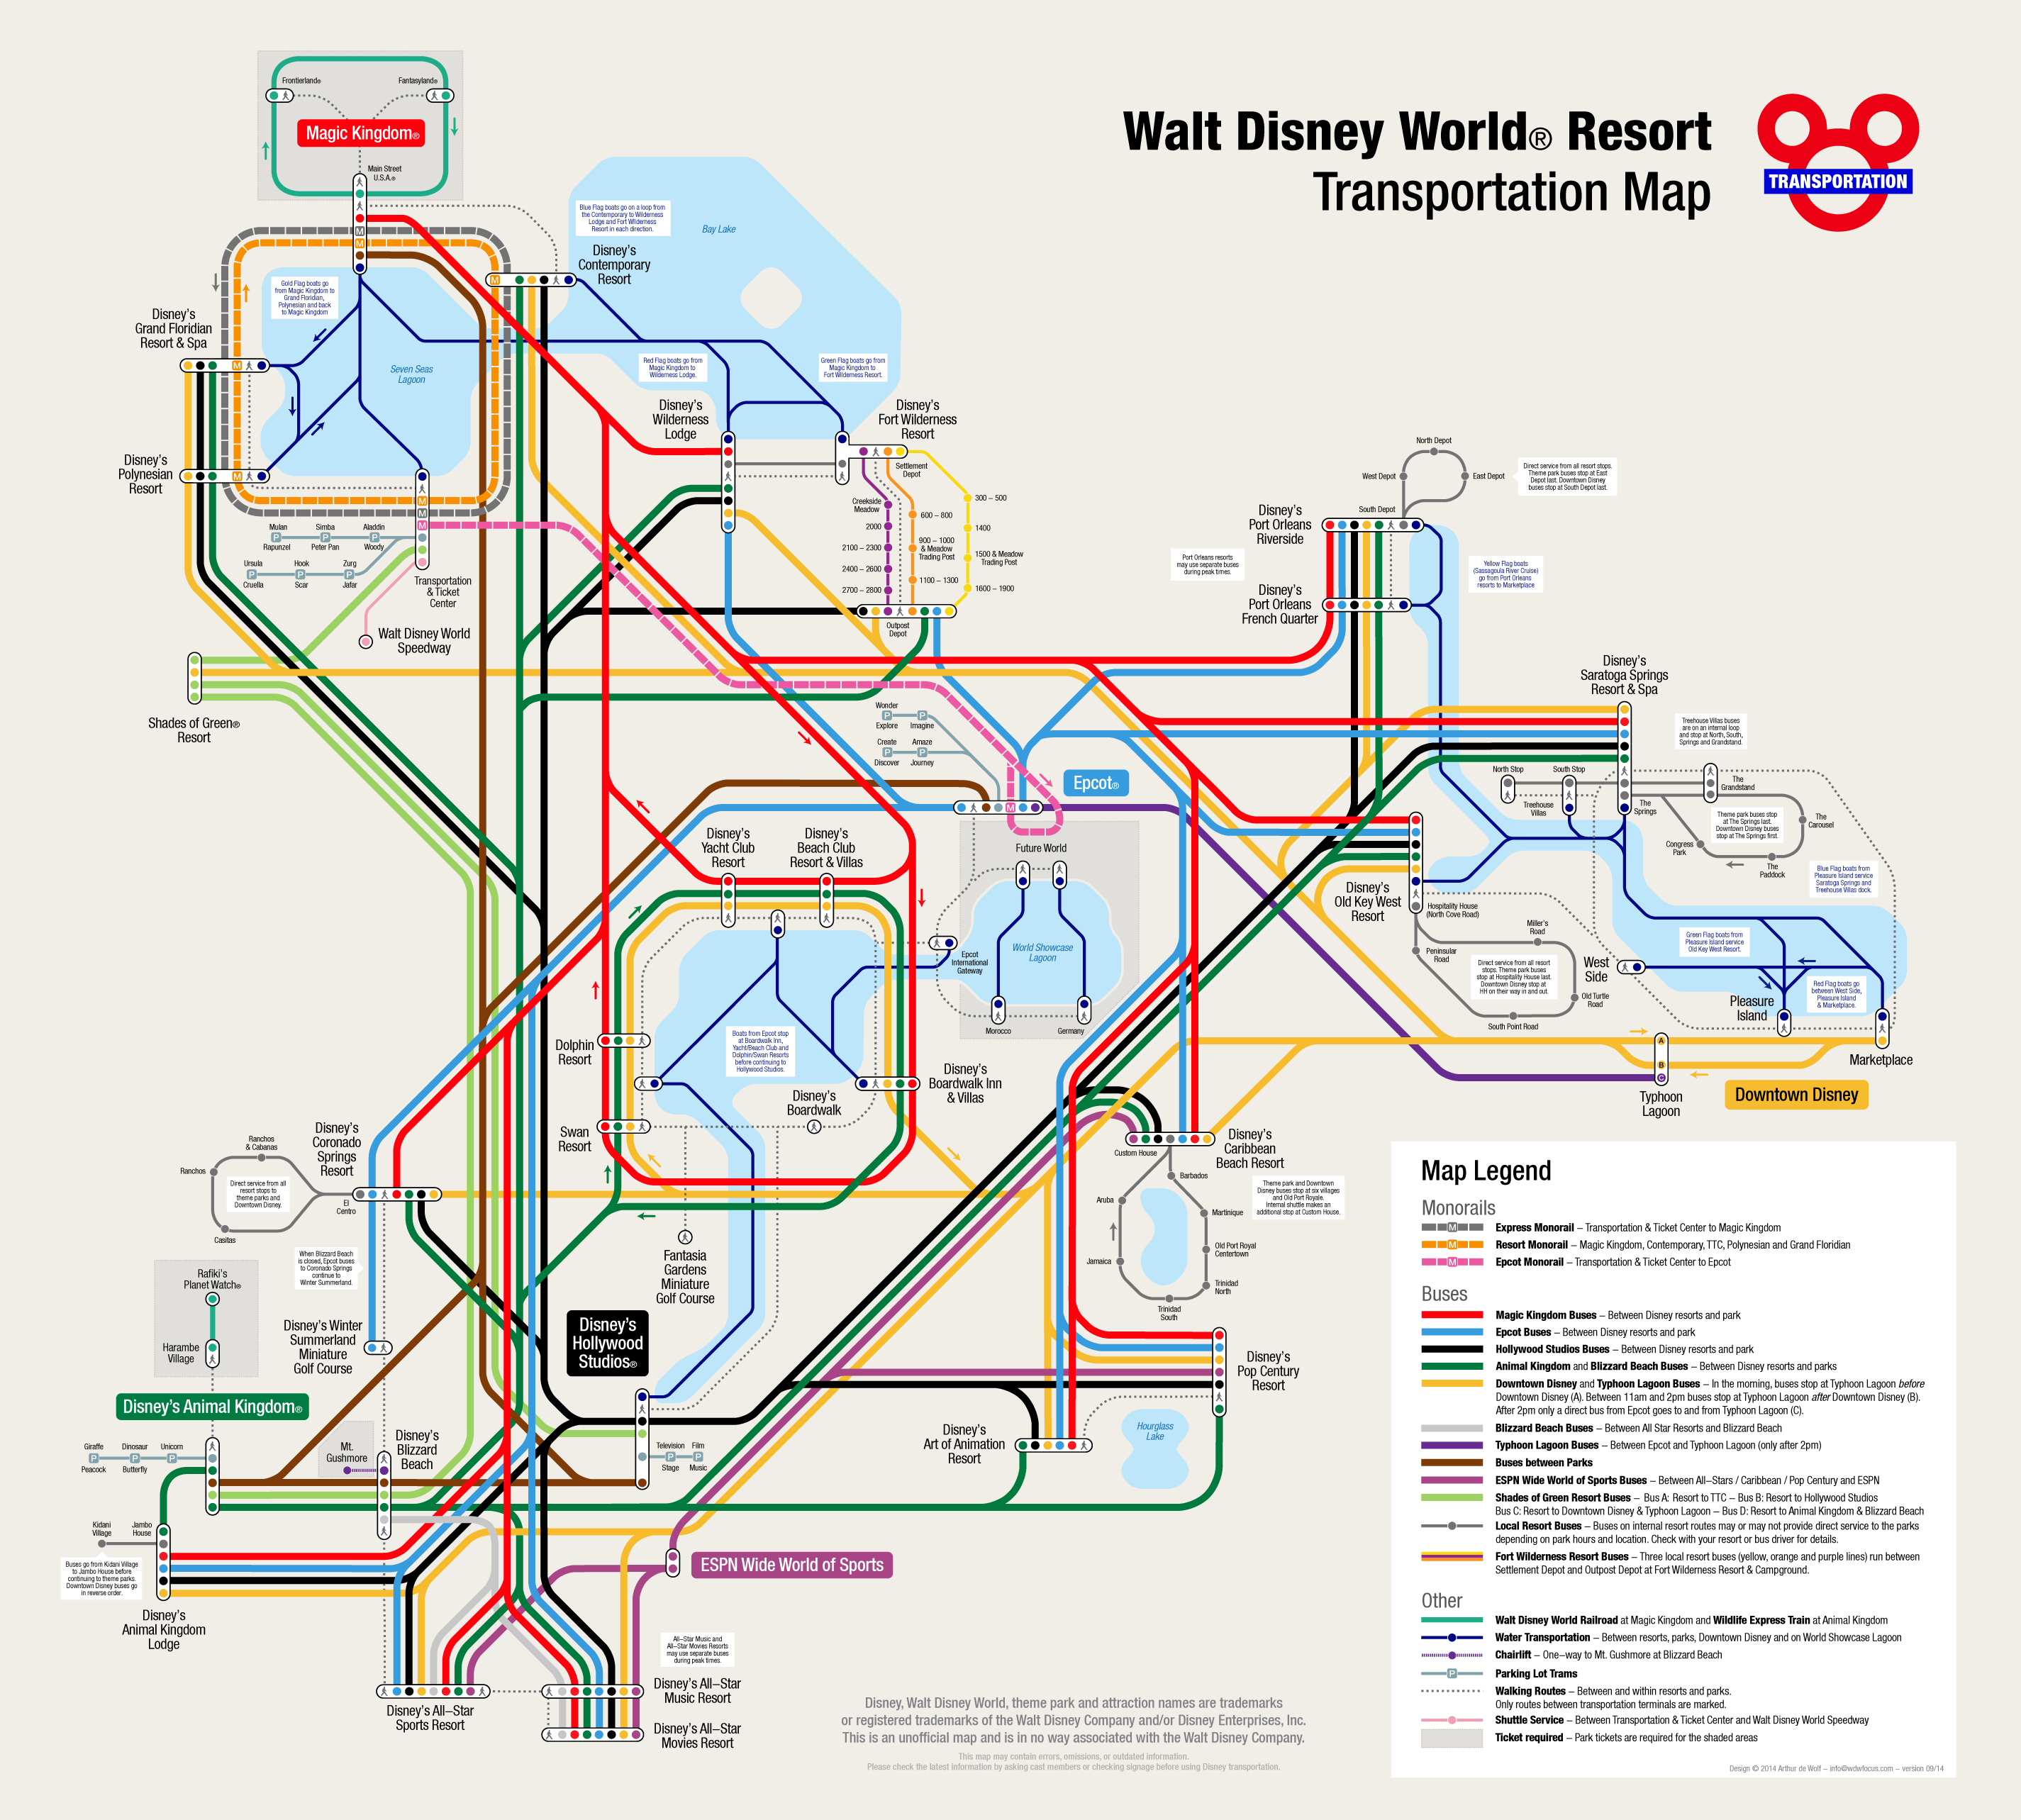 Disney World Transportation Map Fantastic WDW Transportation Map! | Disney Vacation Planning